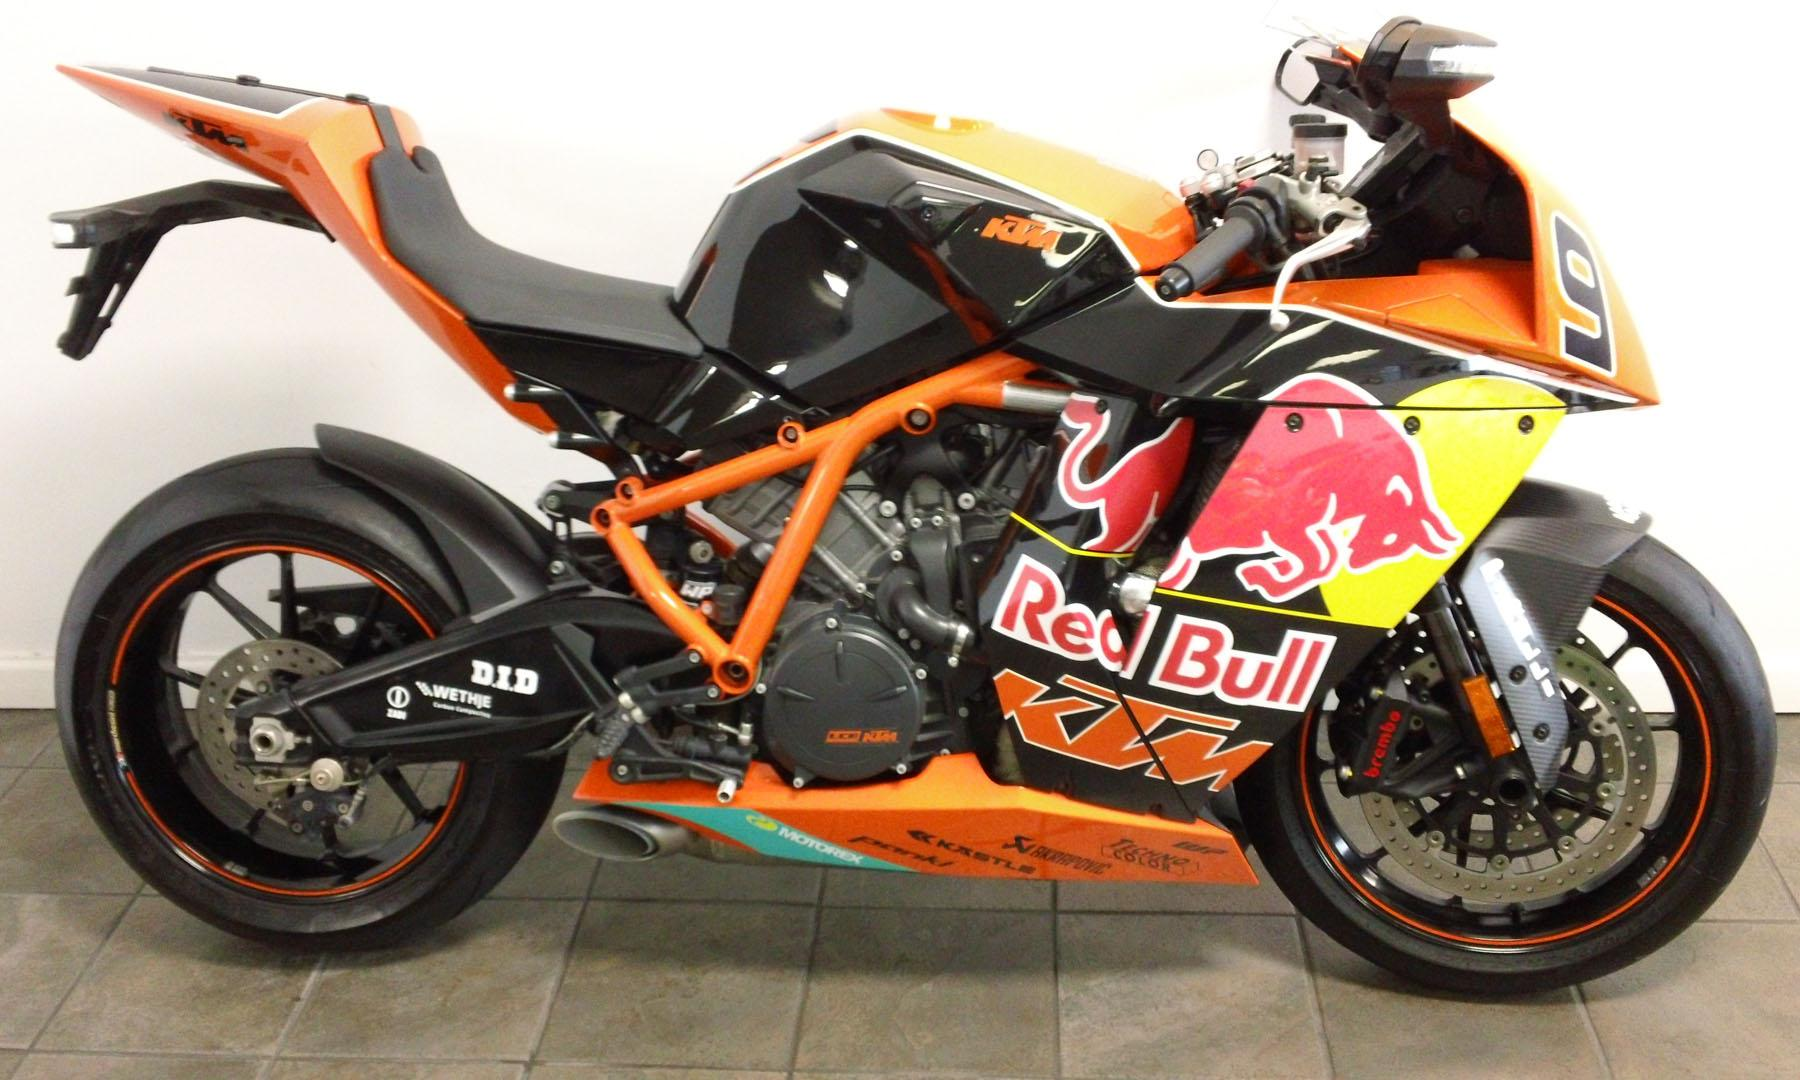 KTM 1190 RC8 R Red Bull Limited Edition 2010 images #86769